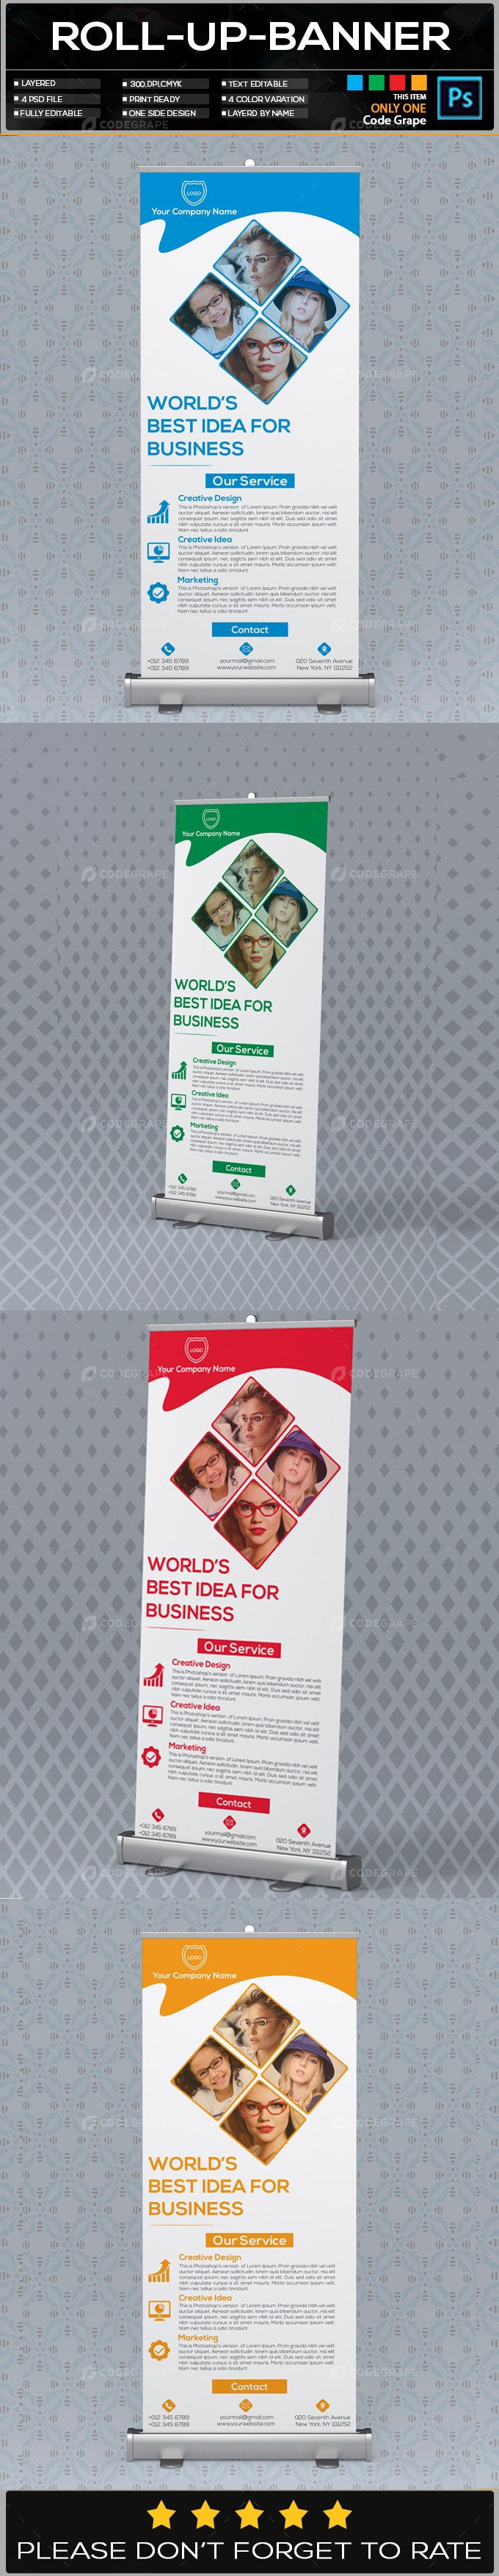 Roll Up Banner Vol - 02